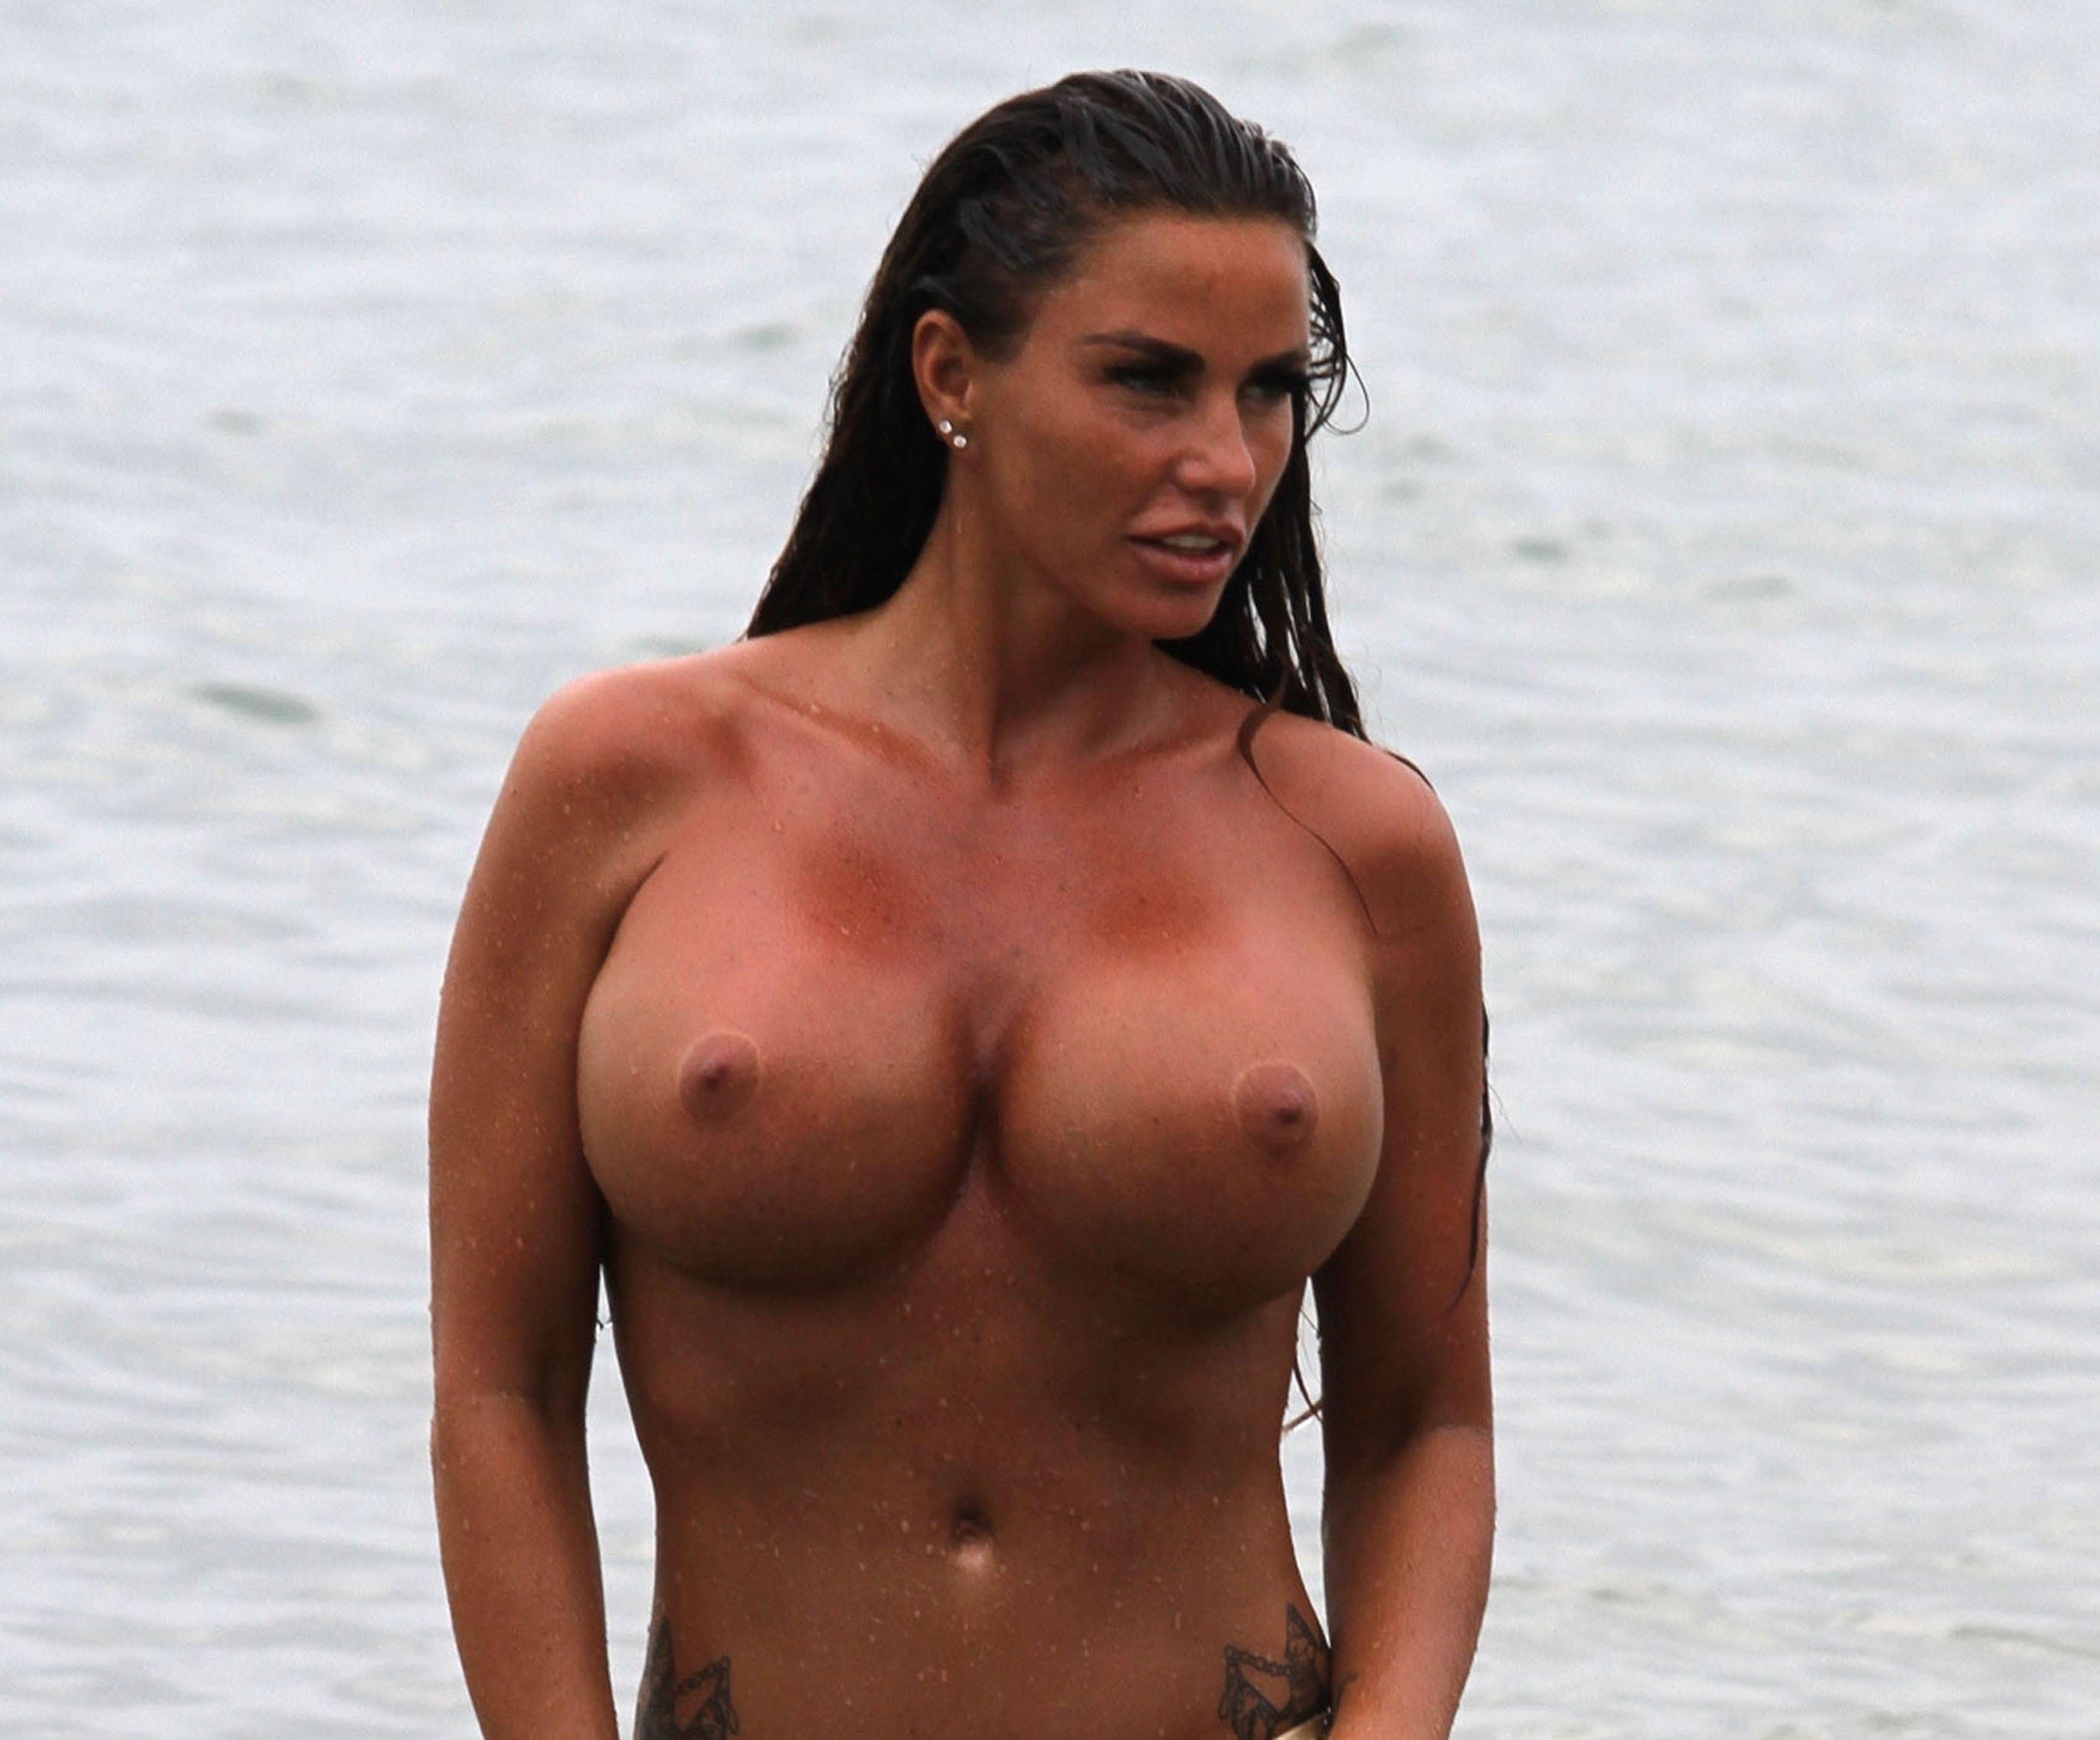 Katie Prices Latest Topless Pictures From Thailand - The -9000